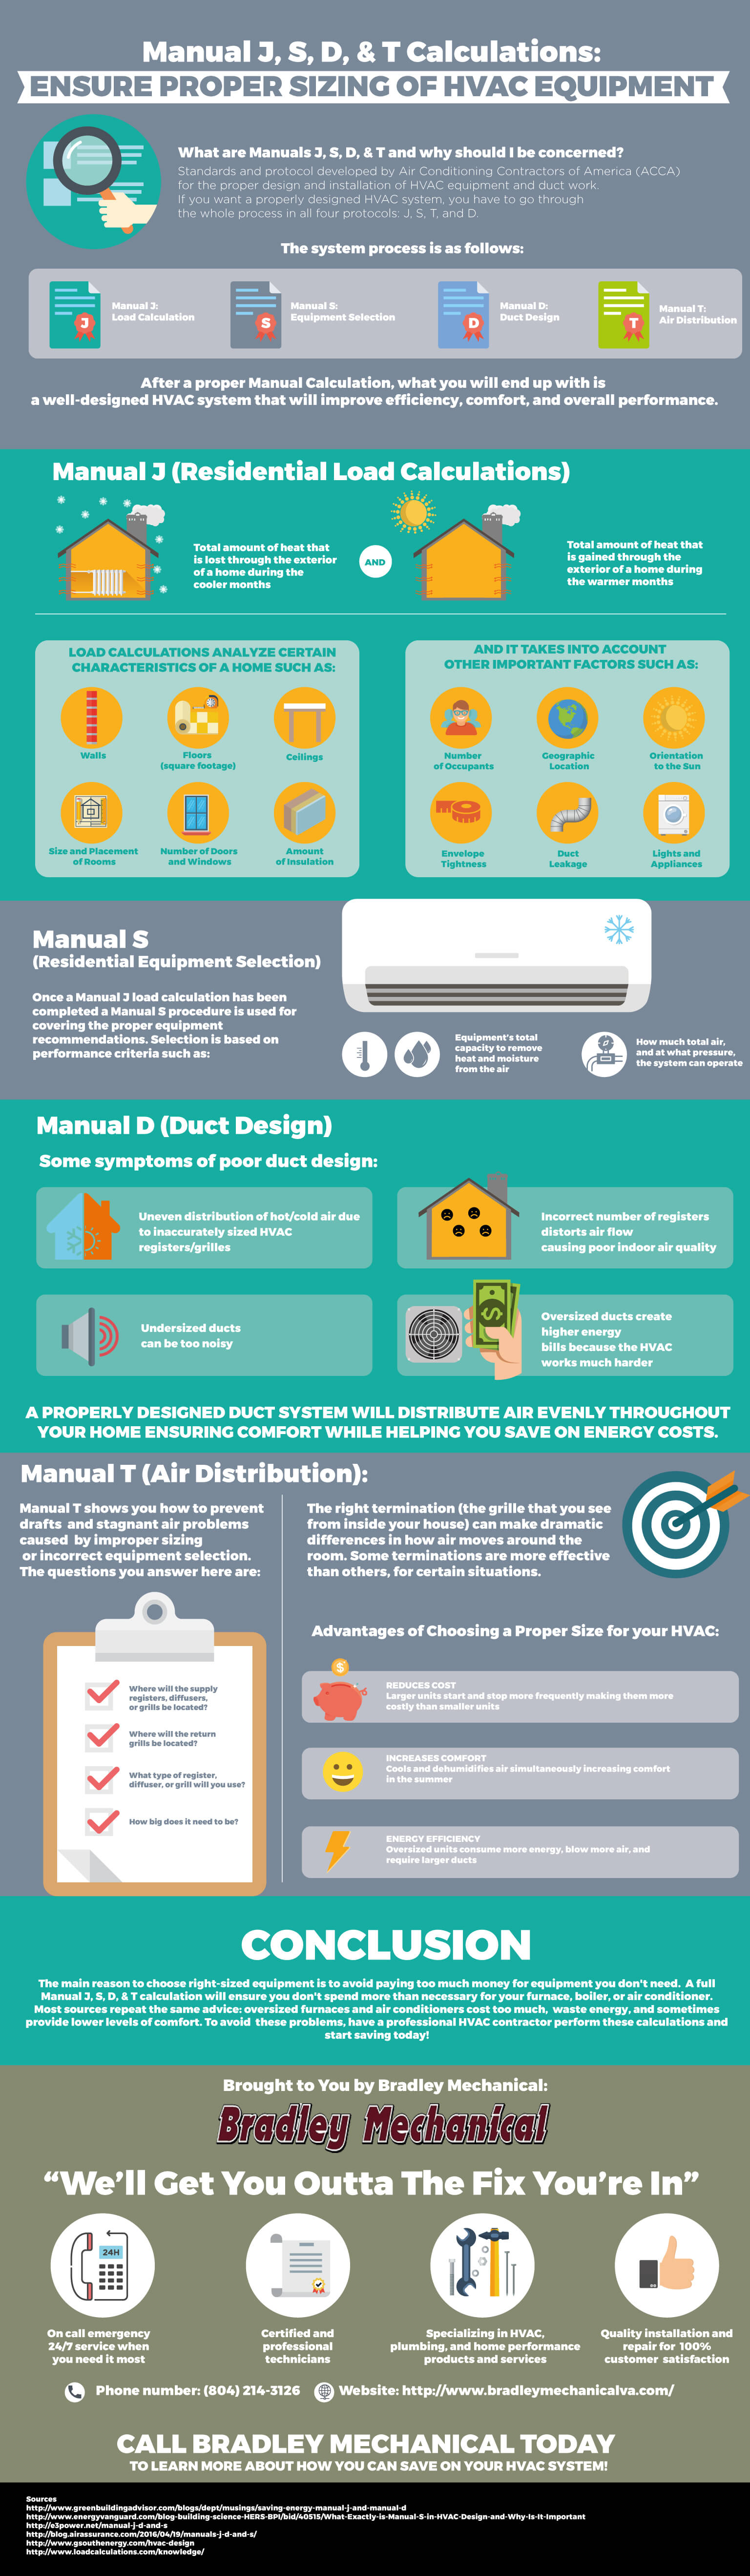 Manual J, S, D, & T Info Graphic